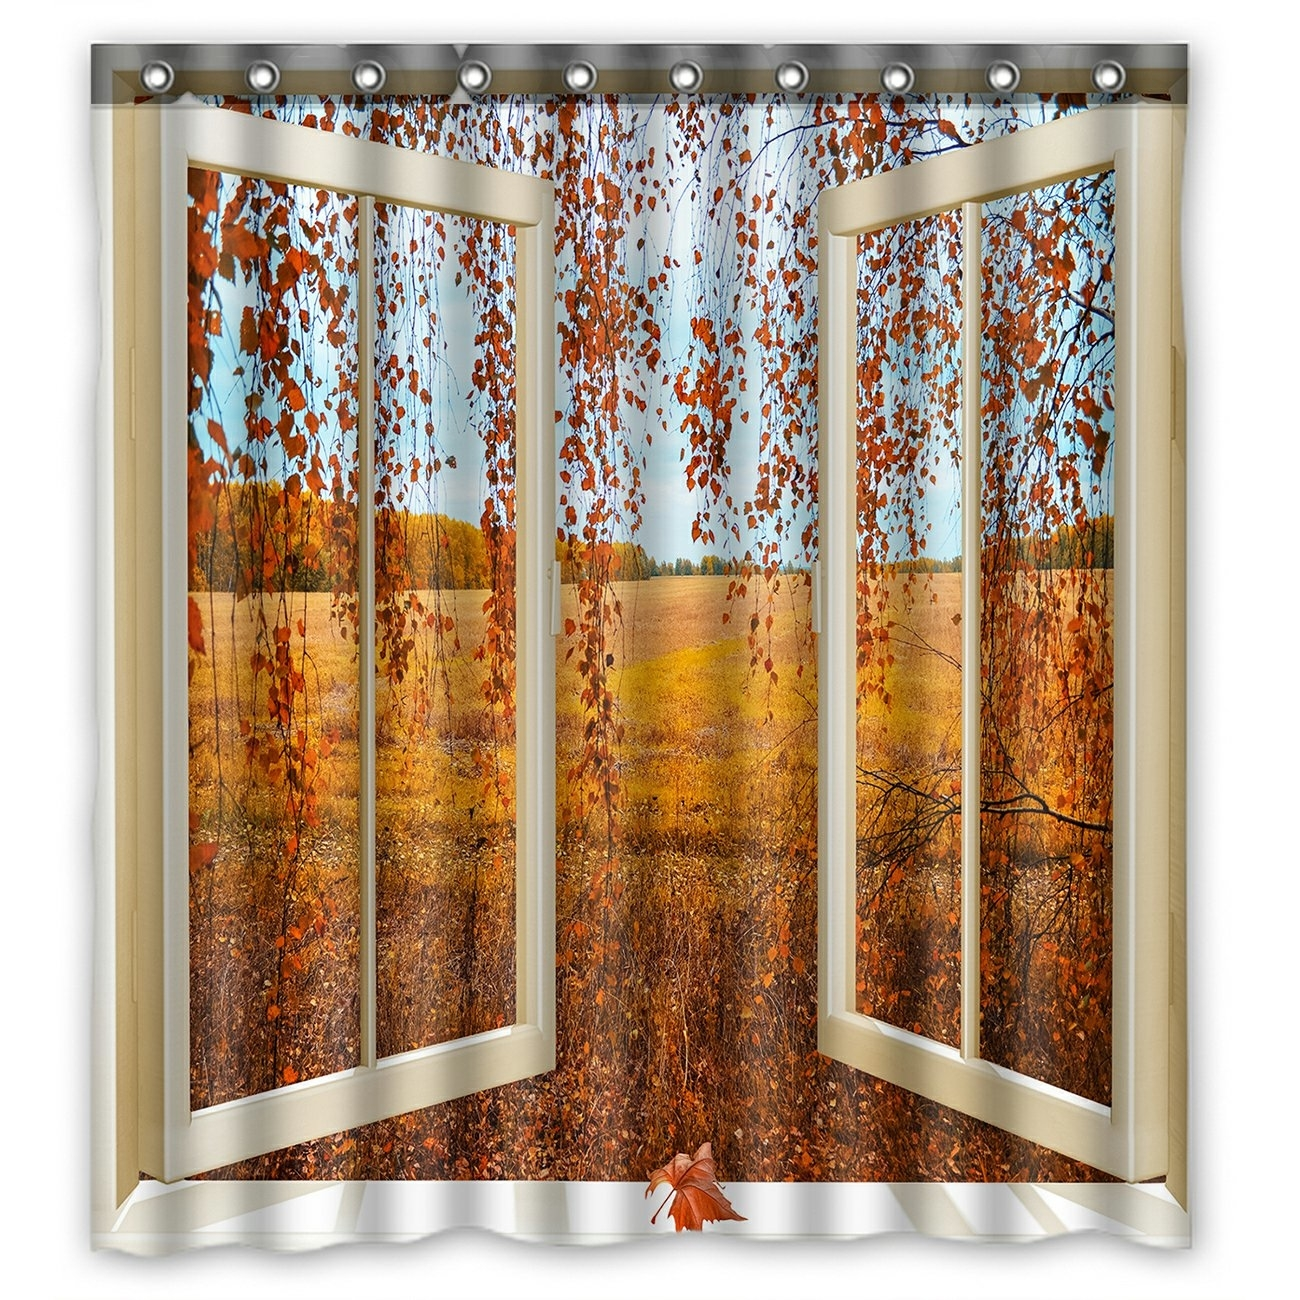 Scenery Shower Curtain, Open Window overlook the Autumn Forest Shower Curtain 66x72 inch